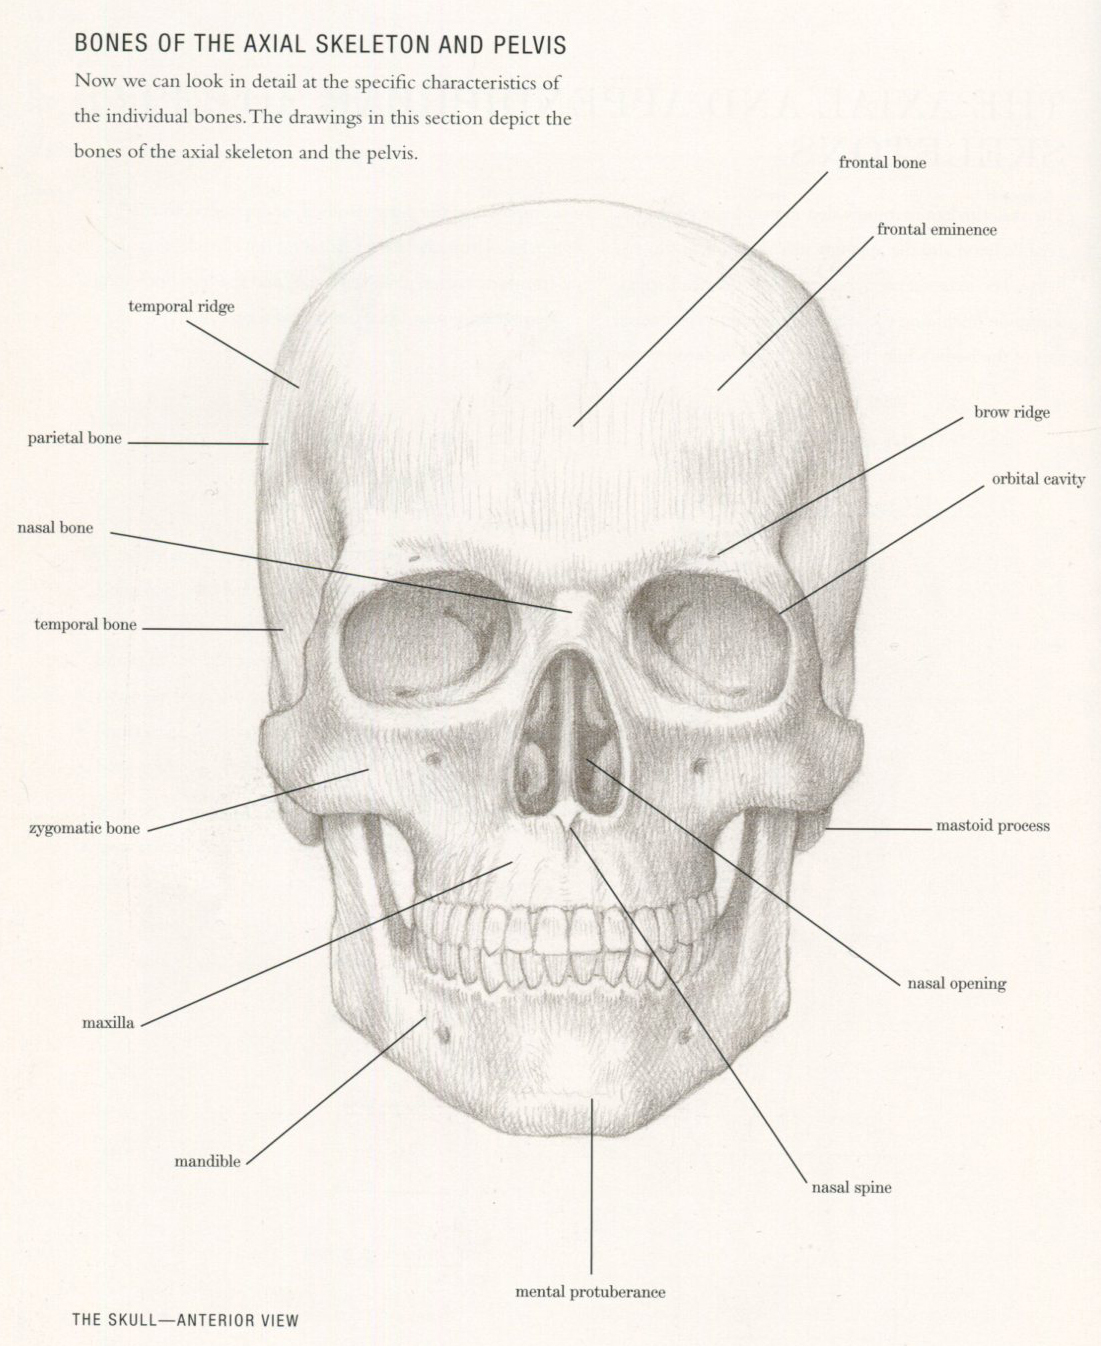 medium resolution of all images taken from basic human anatomy by roberto osti